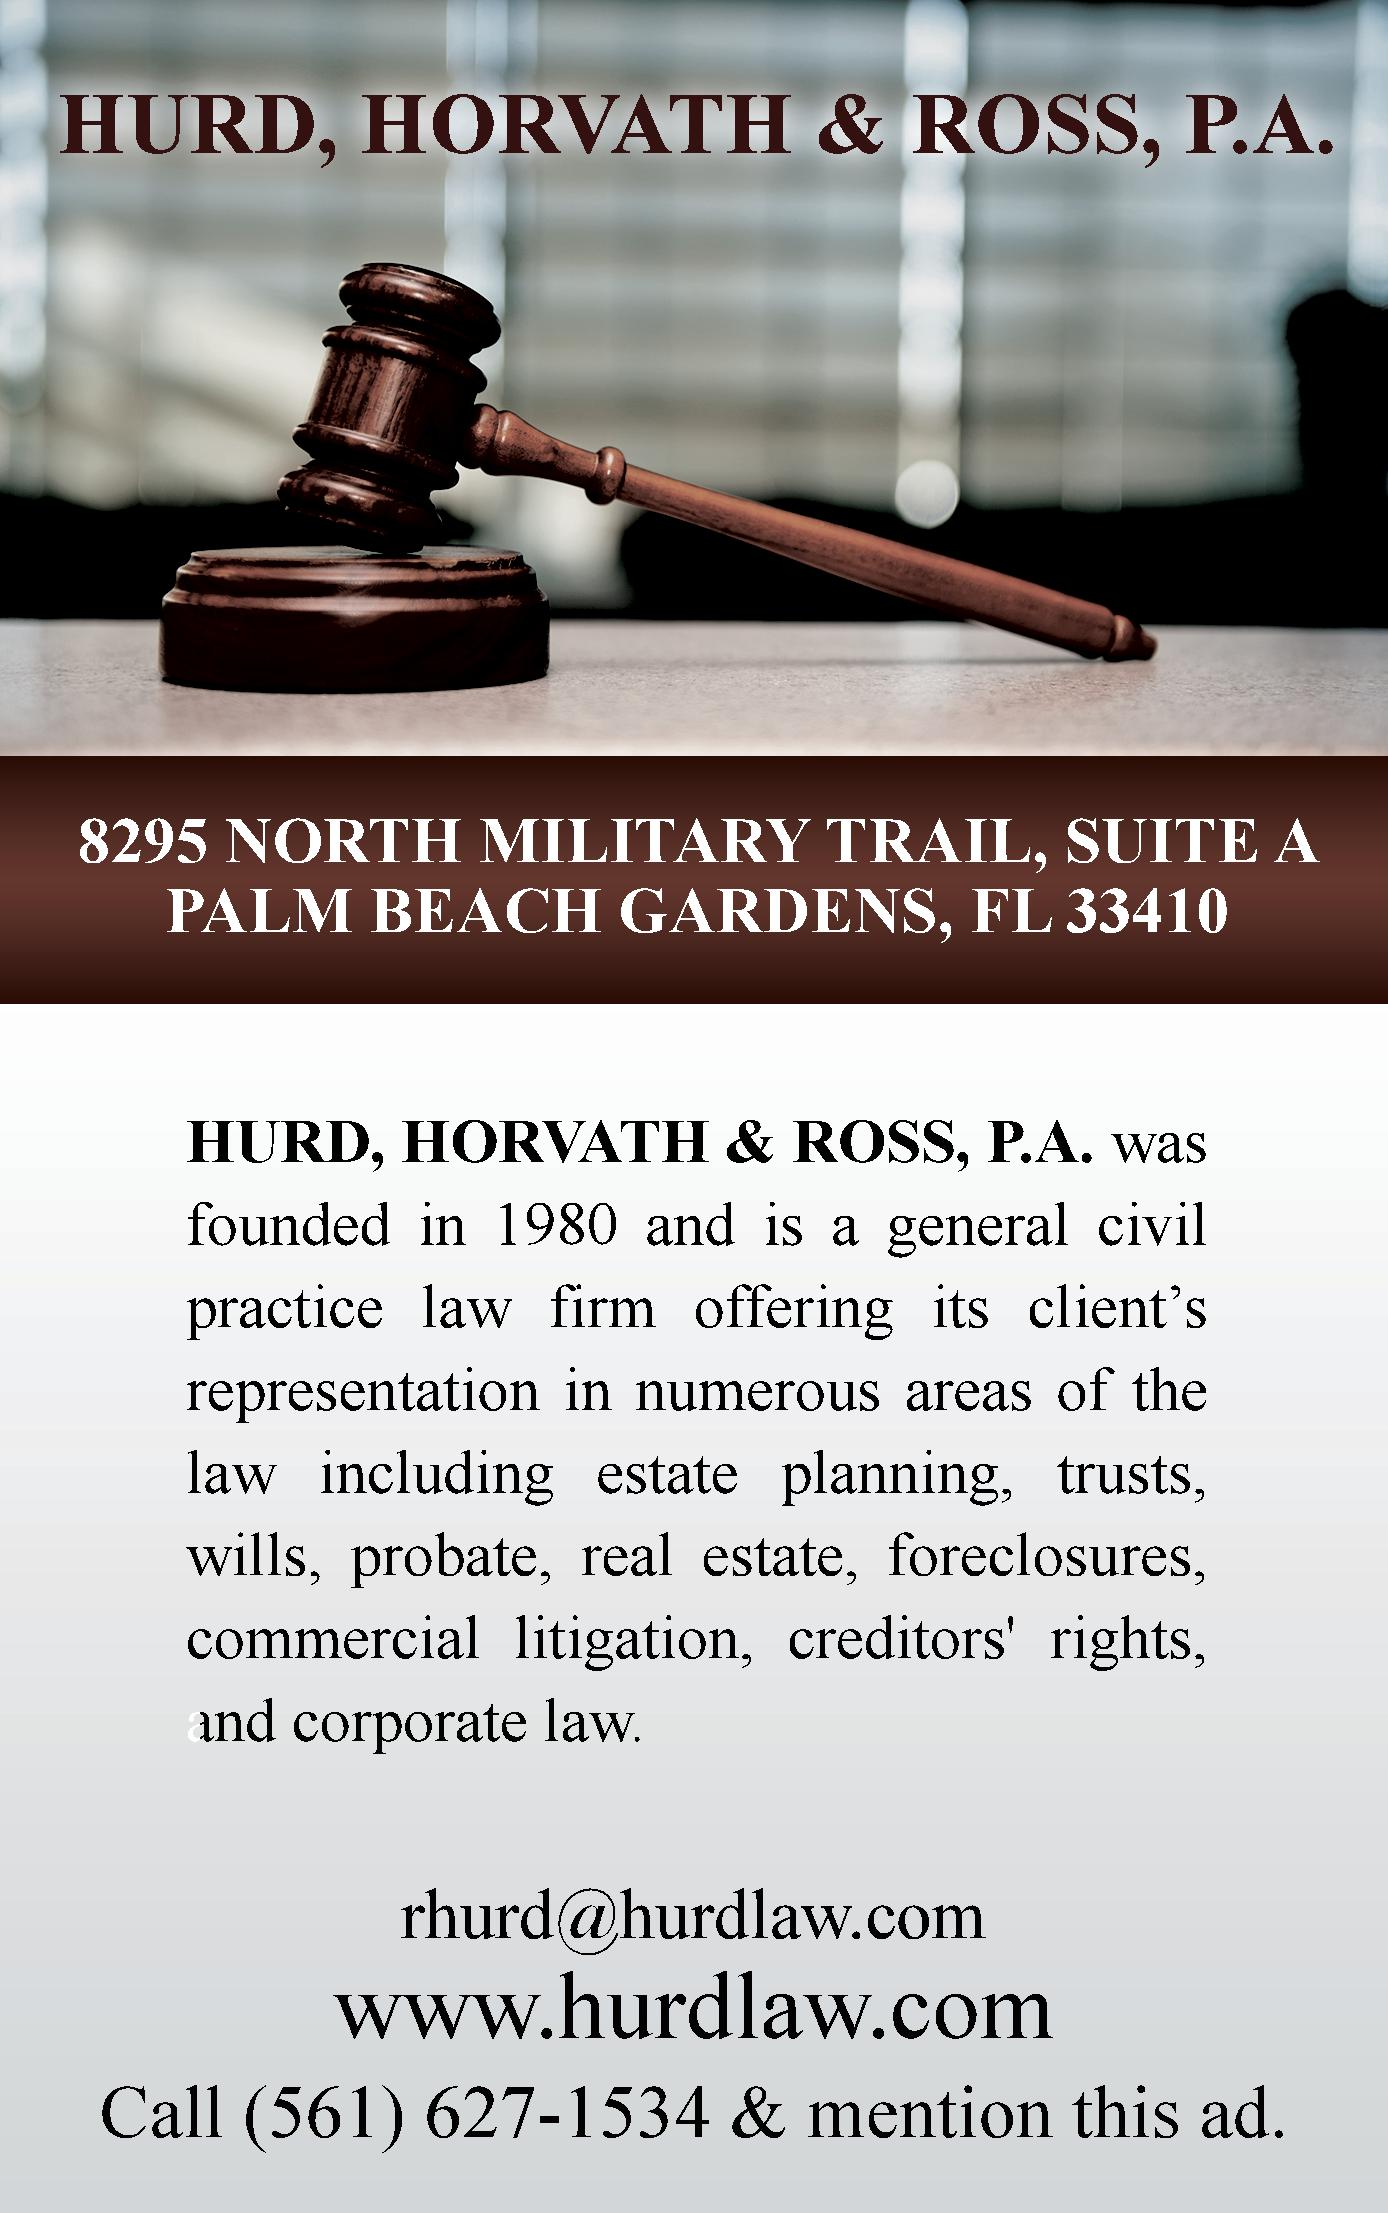 Hurd, Horvath & Ross, P.A.